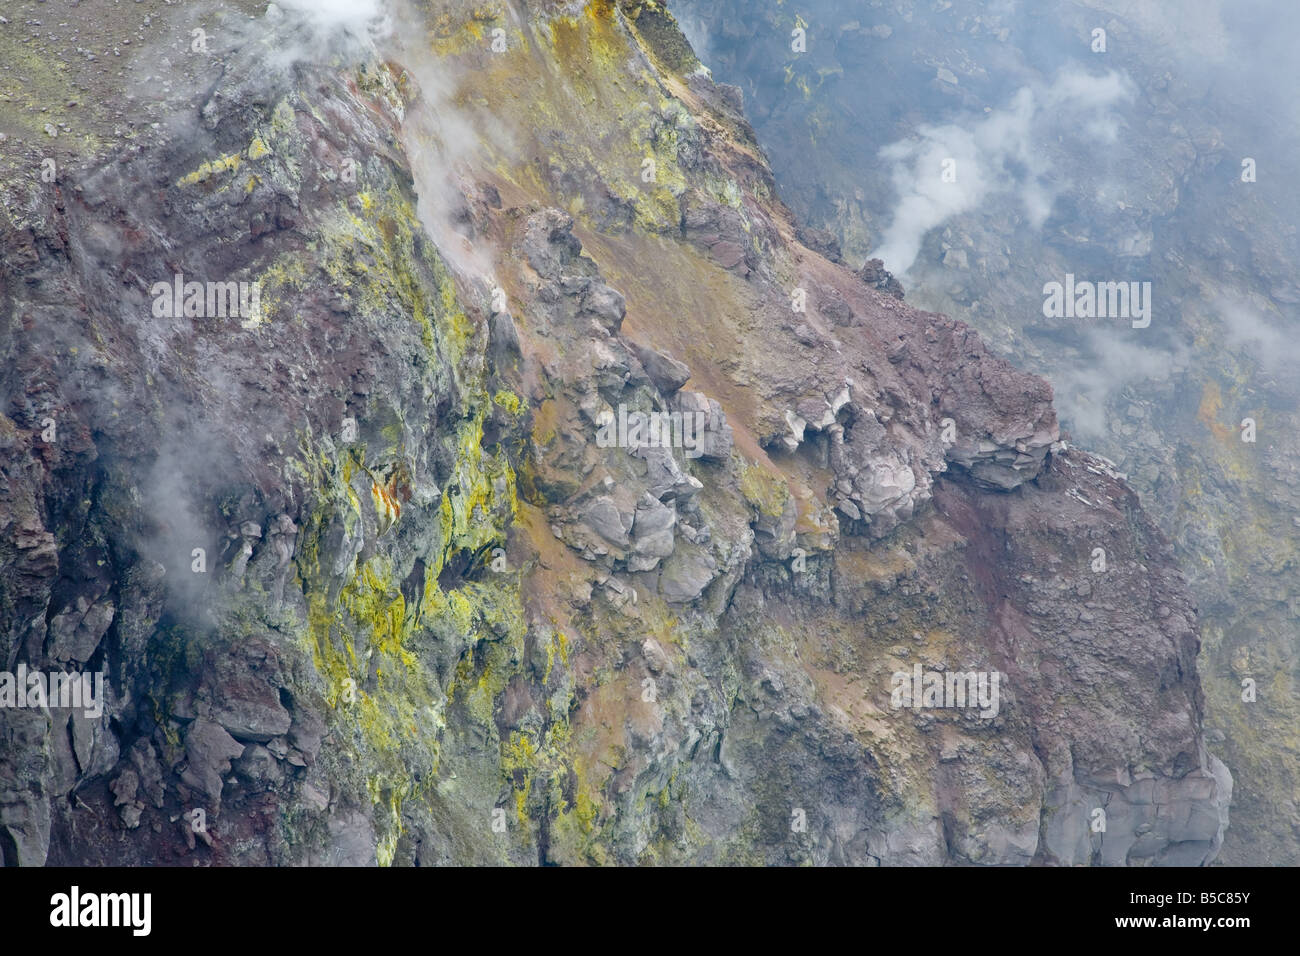 Sulphur and oxides from fumaroles at the inner crater rim of Mt Etna volcano - Stock Image